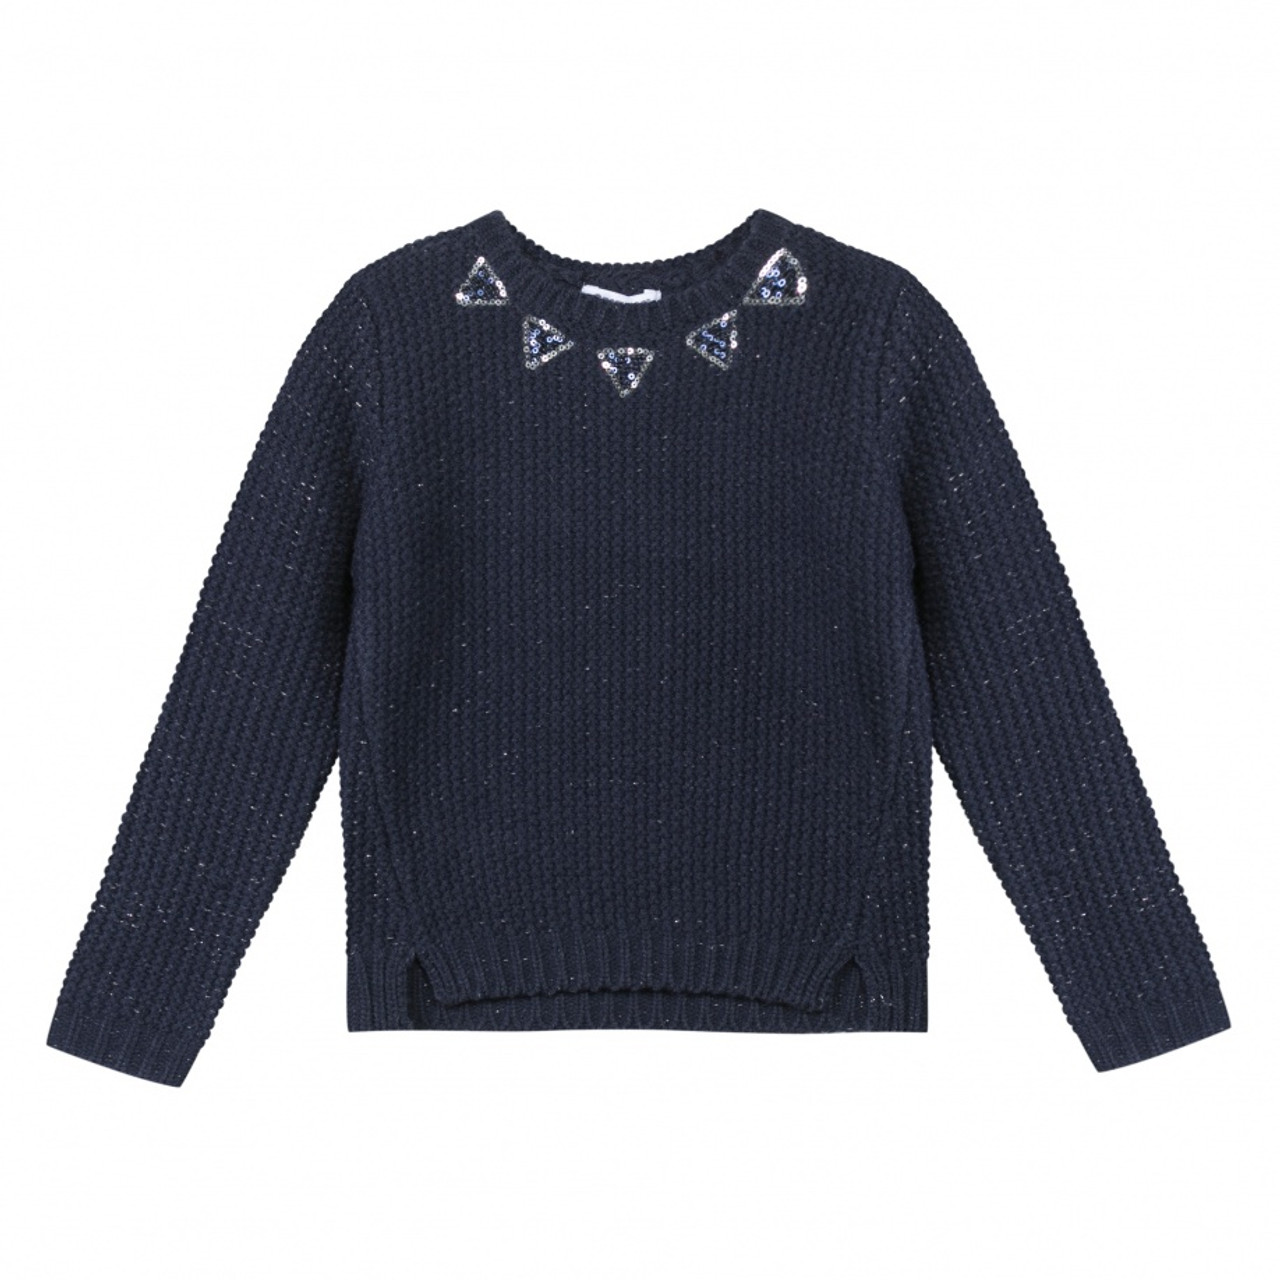 3Pommes Sweater 3418025